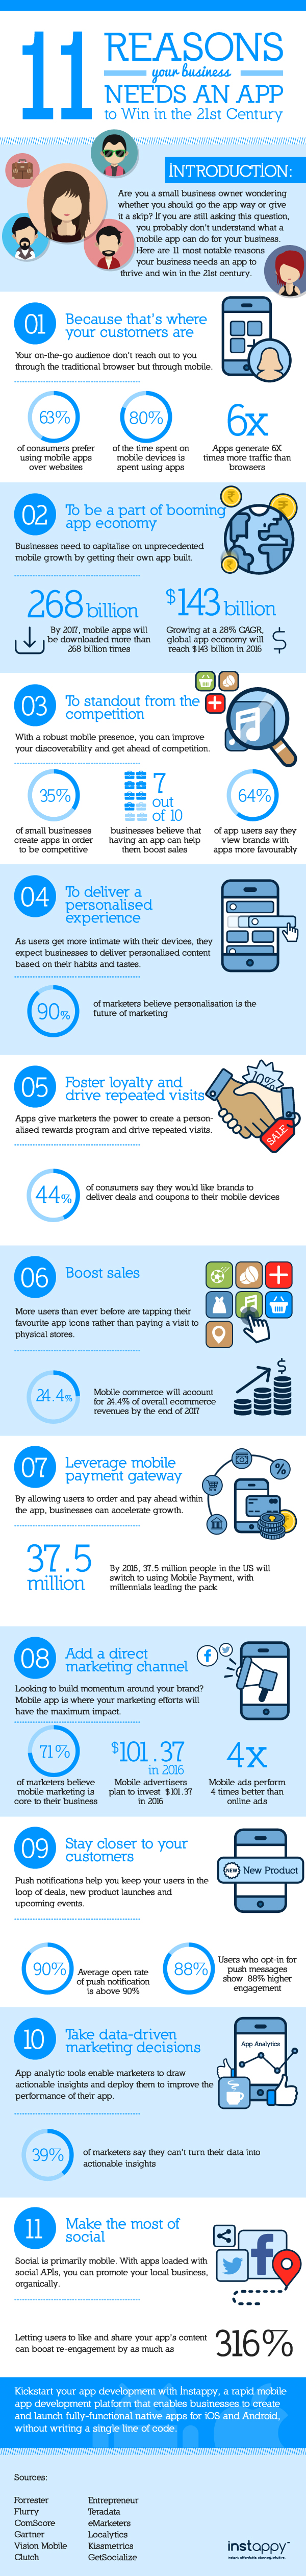 11 Reasons Your Business Needs An App - Image 1